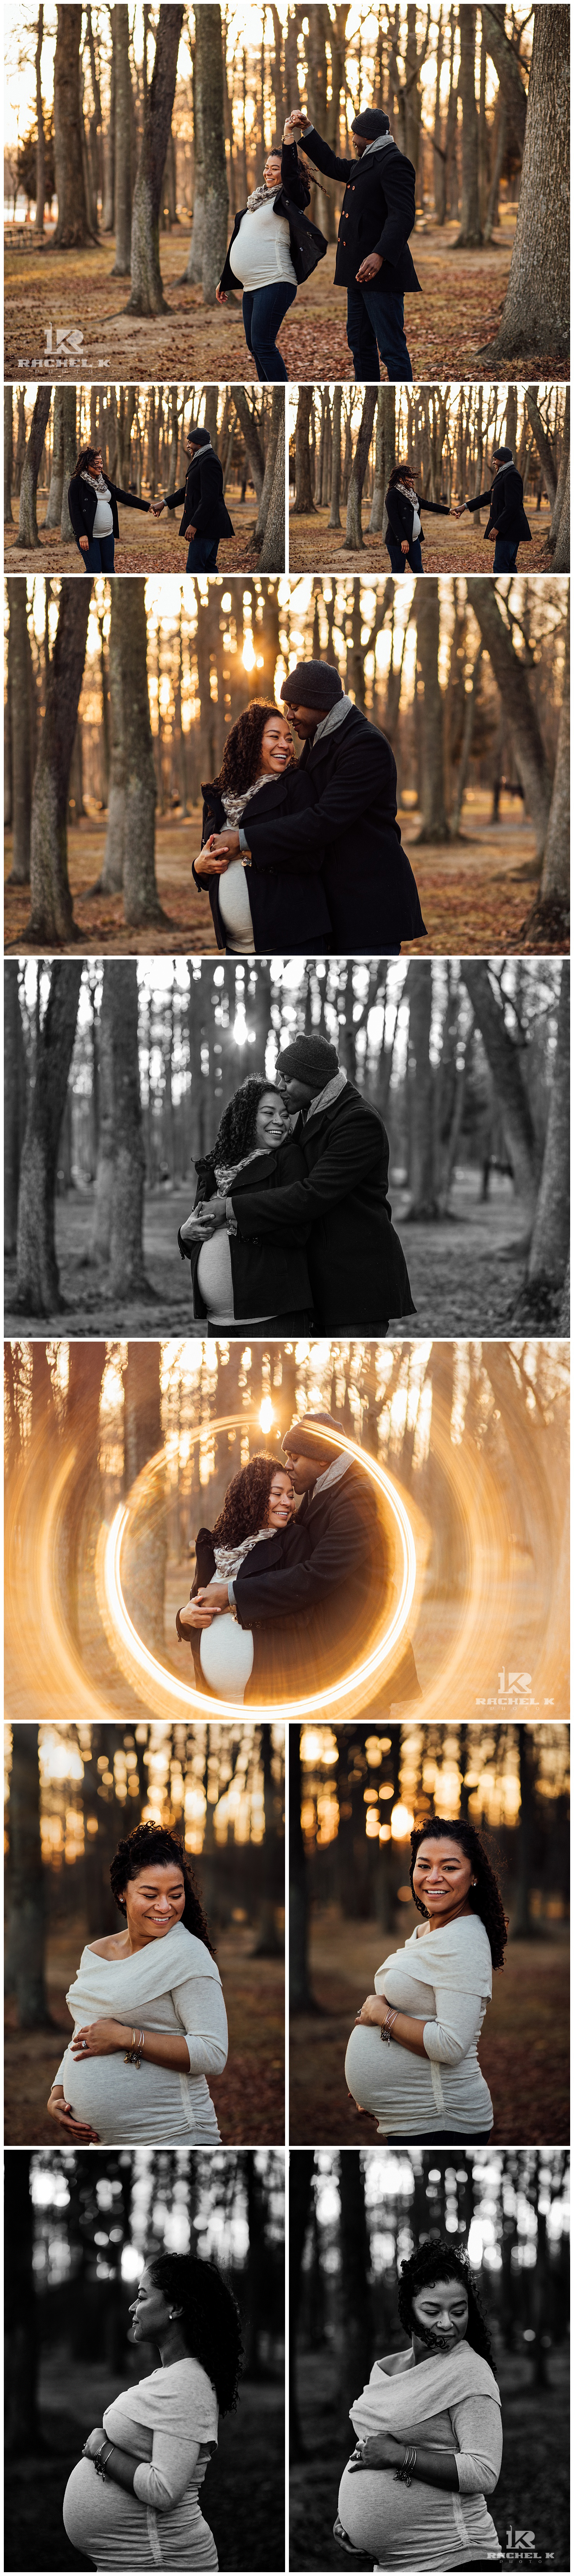 Lifestyle maternity session with emotion by Centreville photographer Rachel K Photo